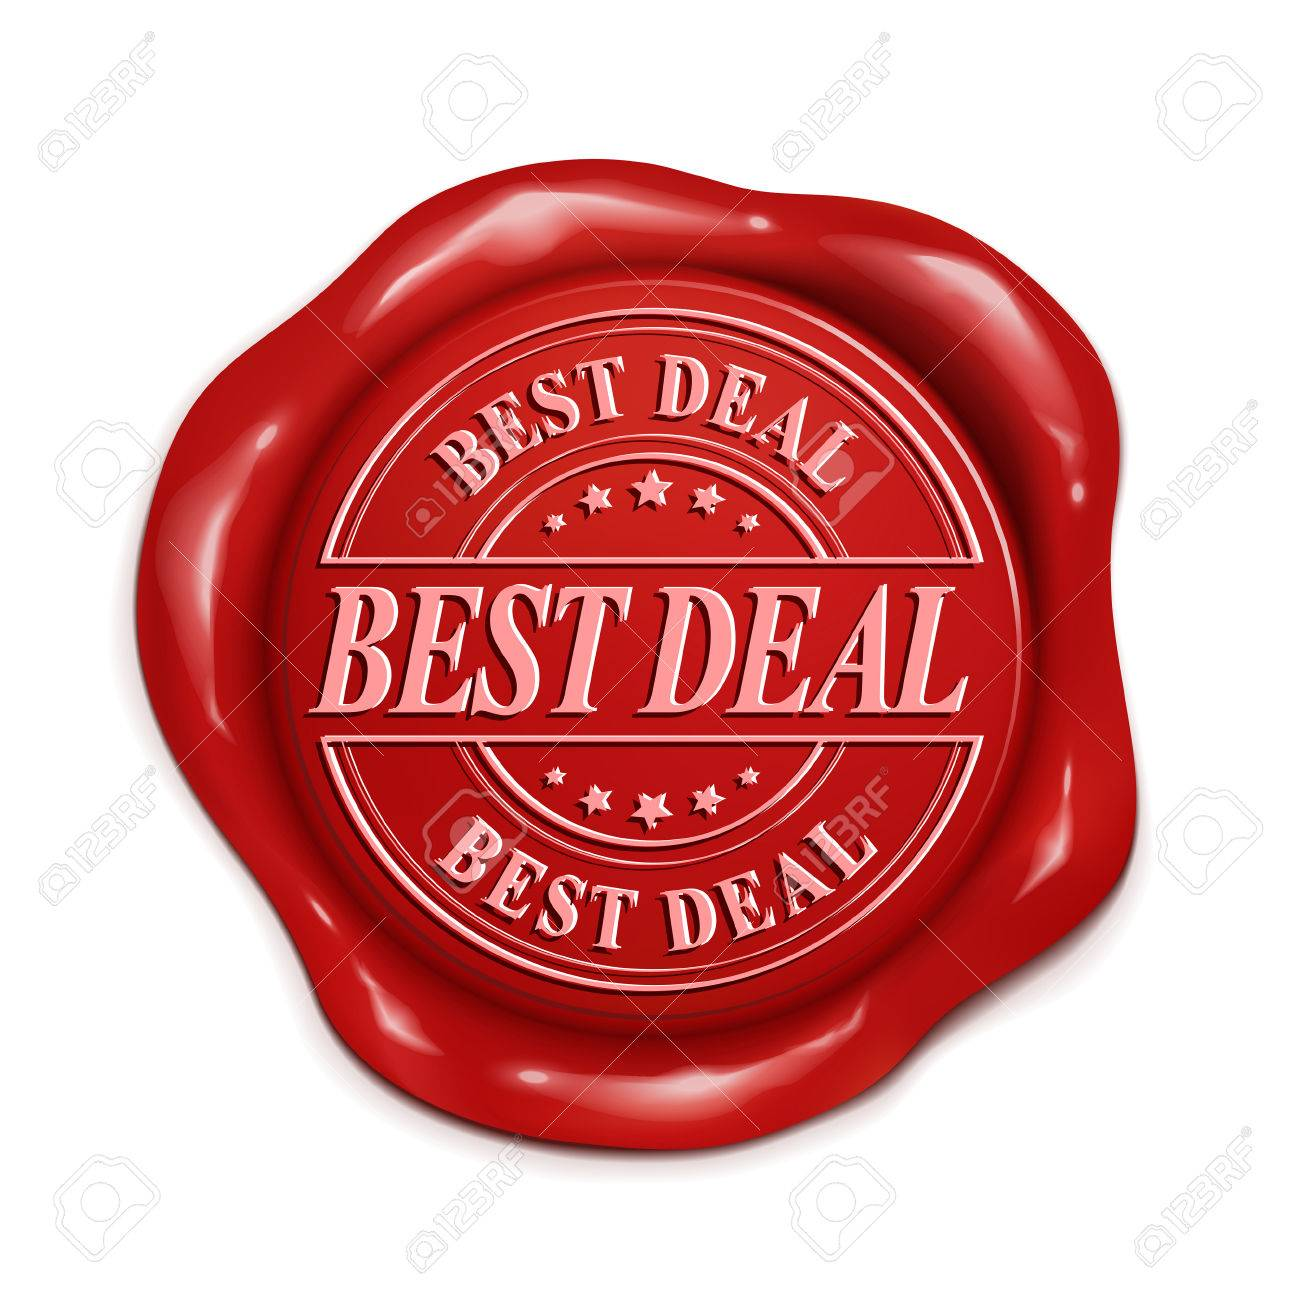 best deal 3d illustration red wax seal over white background royalty